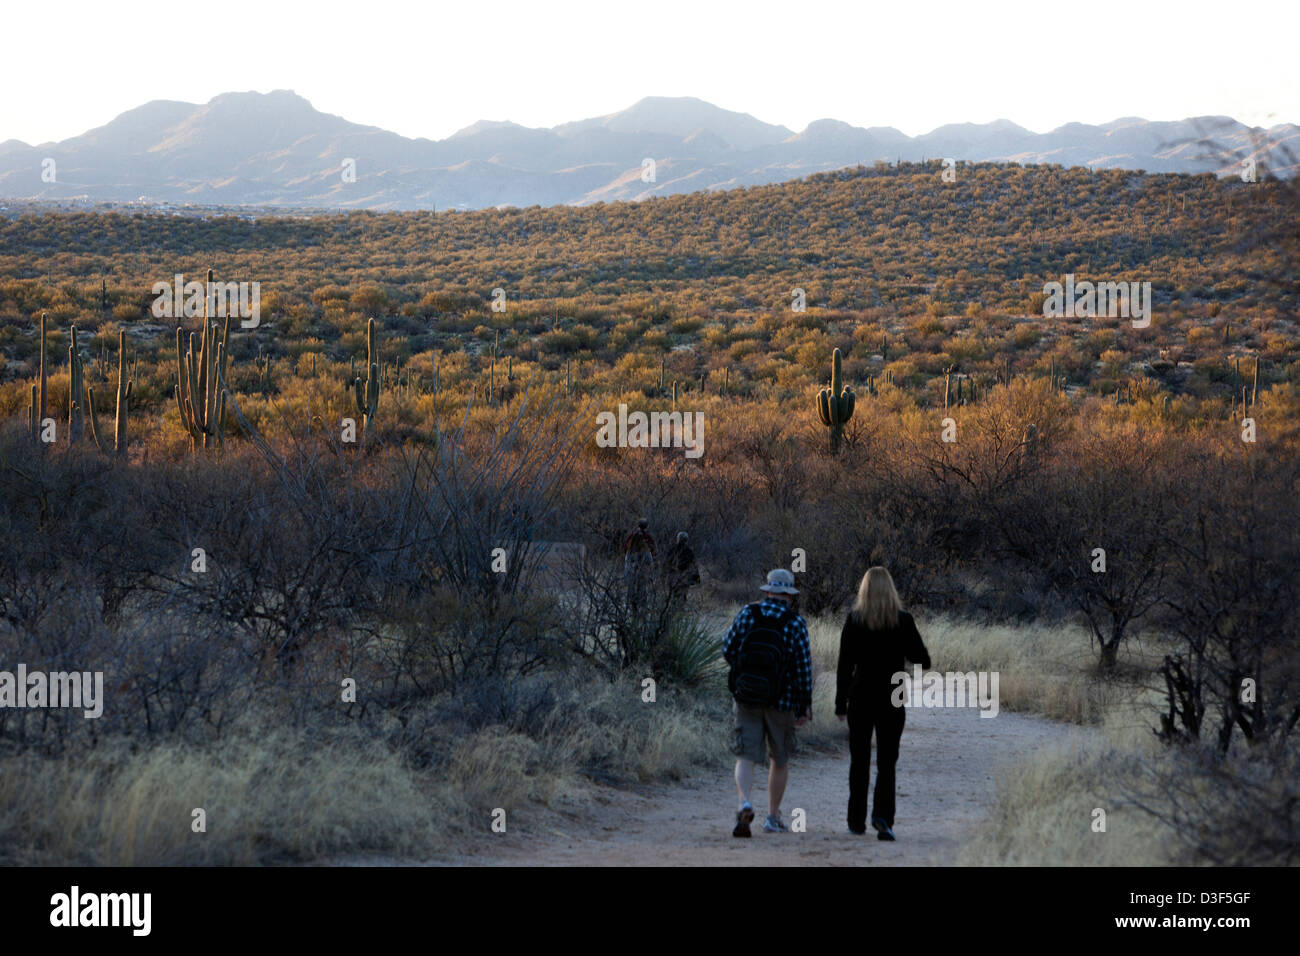 Two people walking on a trail in Catalina State Park near Tucson Arizona, USA - Stock Image